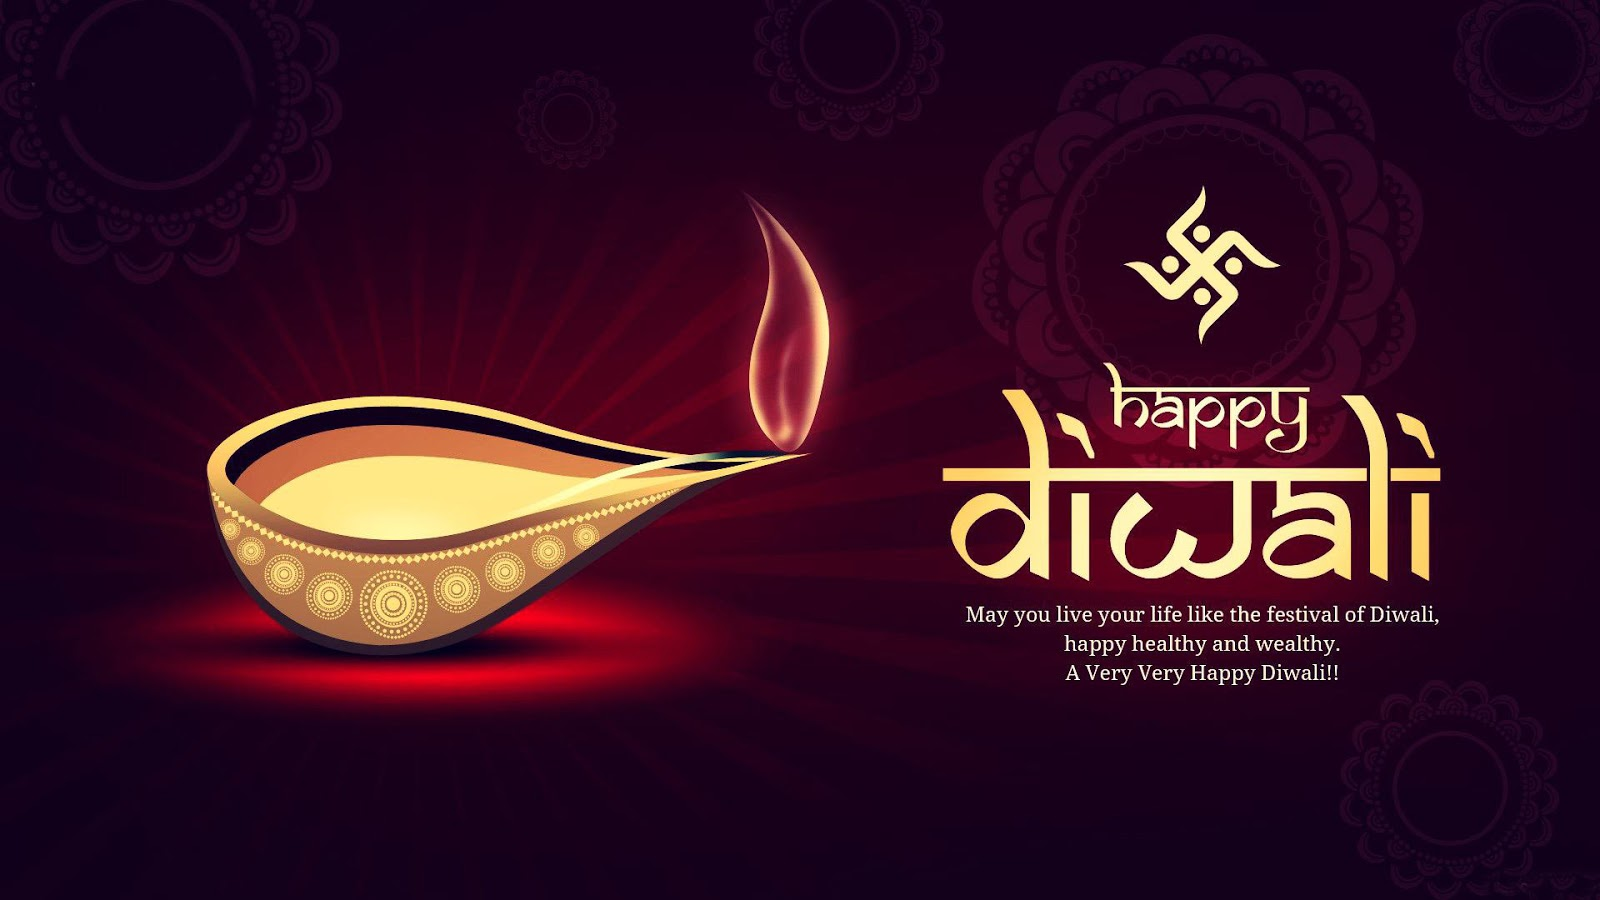 DIWALI 2017- HAPPY DIWALI WISHES,MESSAGES AND DIWALI GREETINGS ...